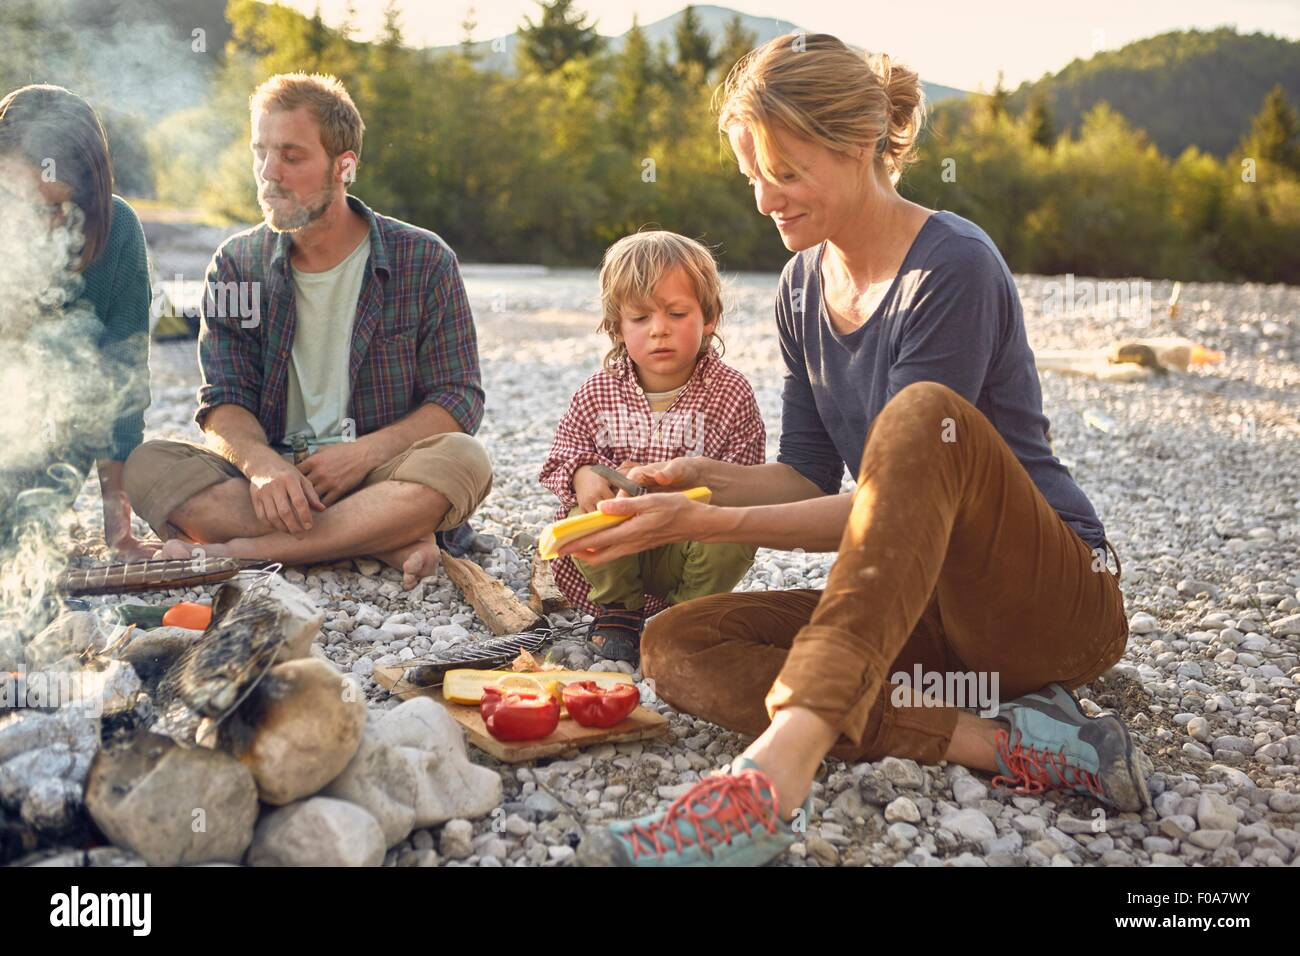 Boy sitting next to campfire watching mature woman prepare food - Stock Image